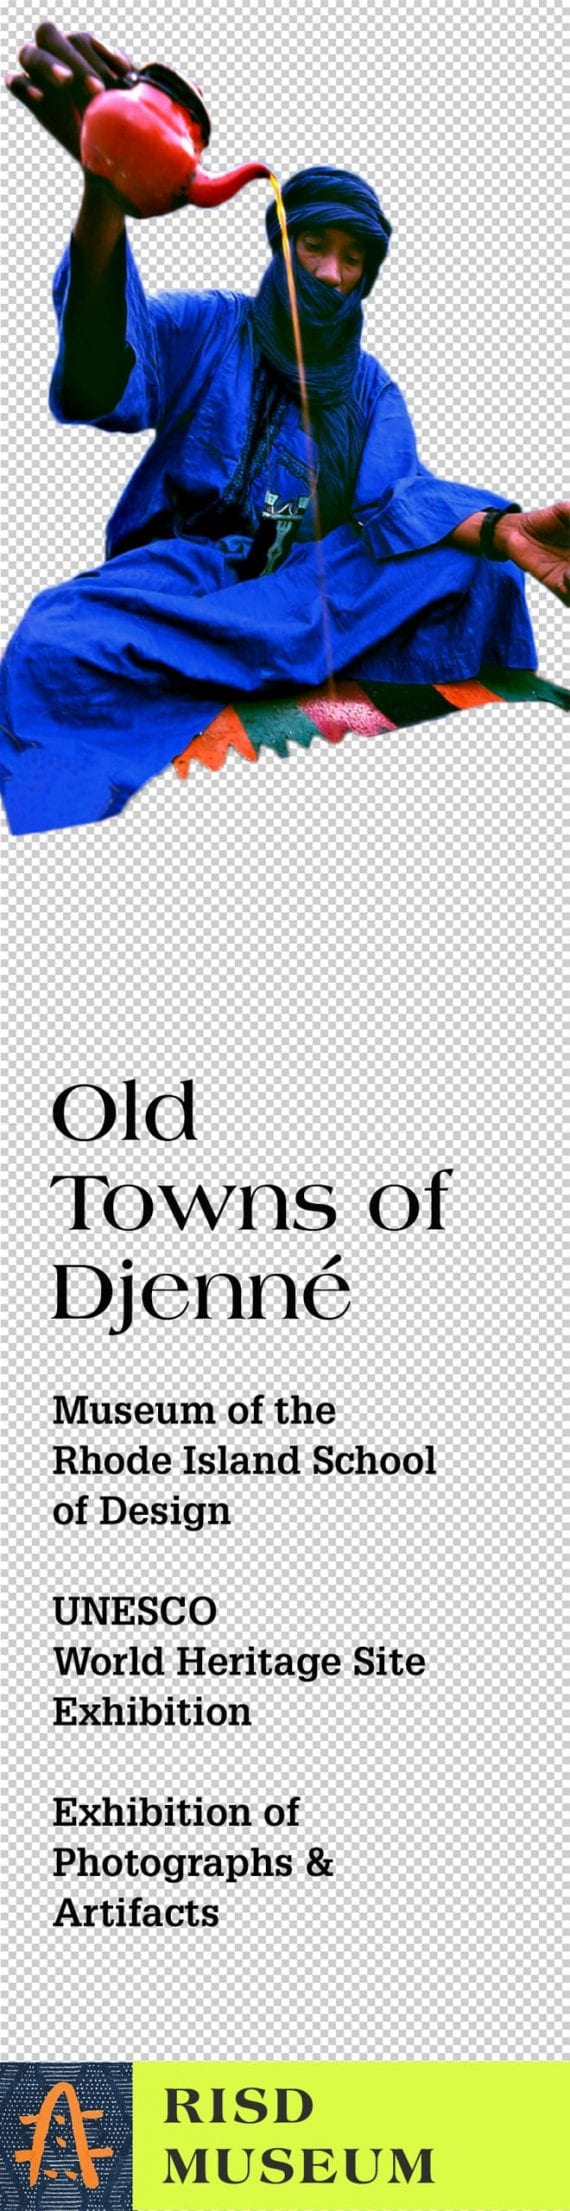 Old Towns of Djenné Travel Ad